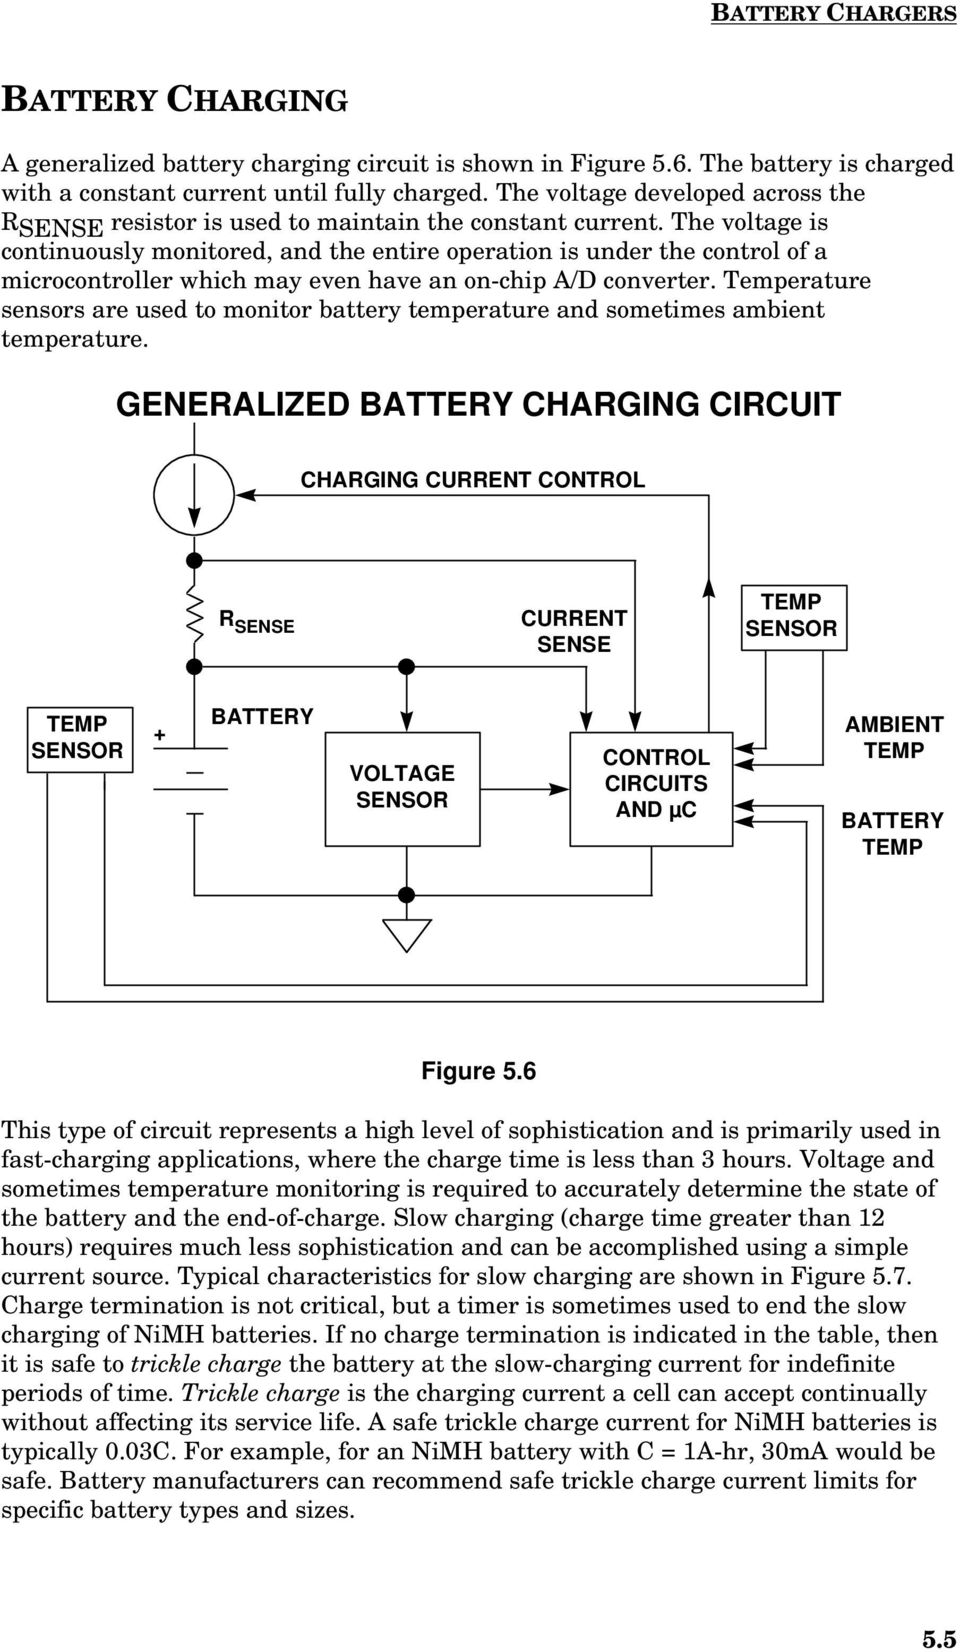 Rechargeable Battery Considerations In Portable Equipment Pdf Batterychargercontroller Controlcircuit Circuit Diagram The Voltage Is Continuously Monitored And Entire Operation Under Control Of A